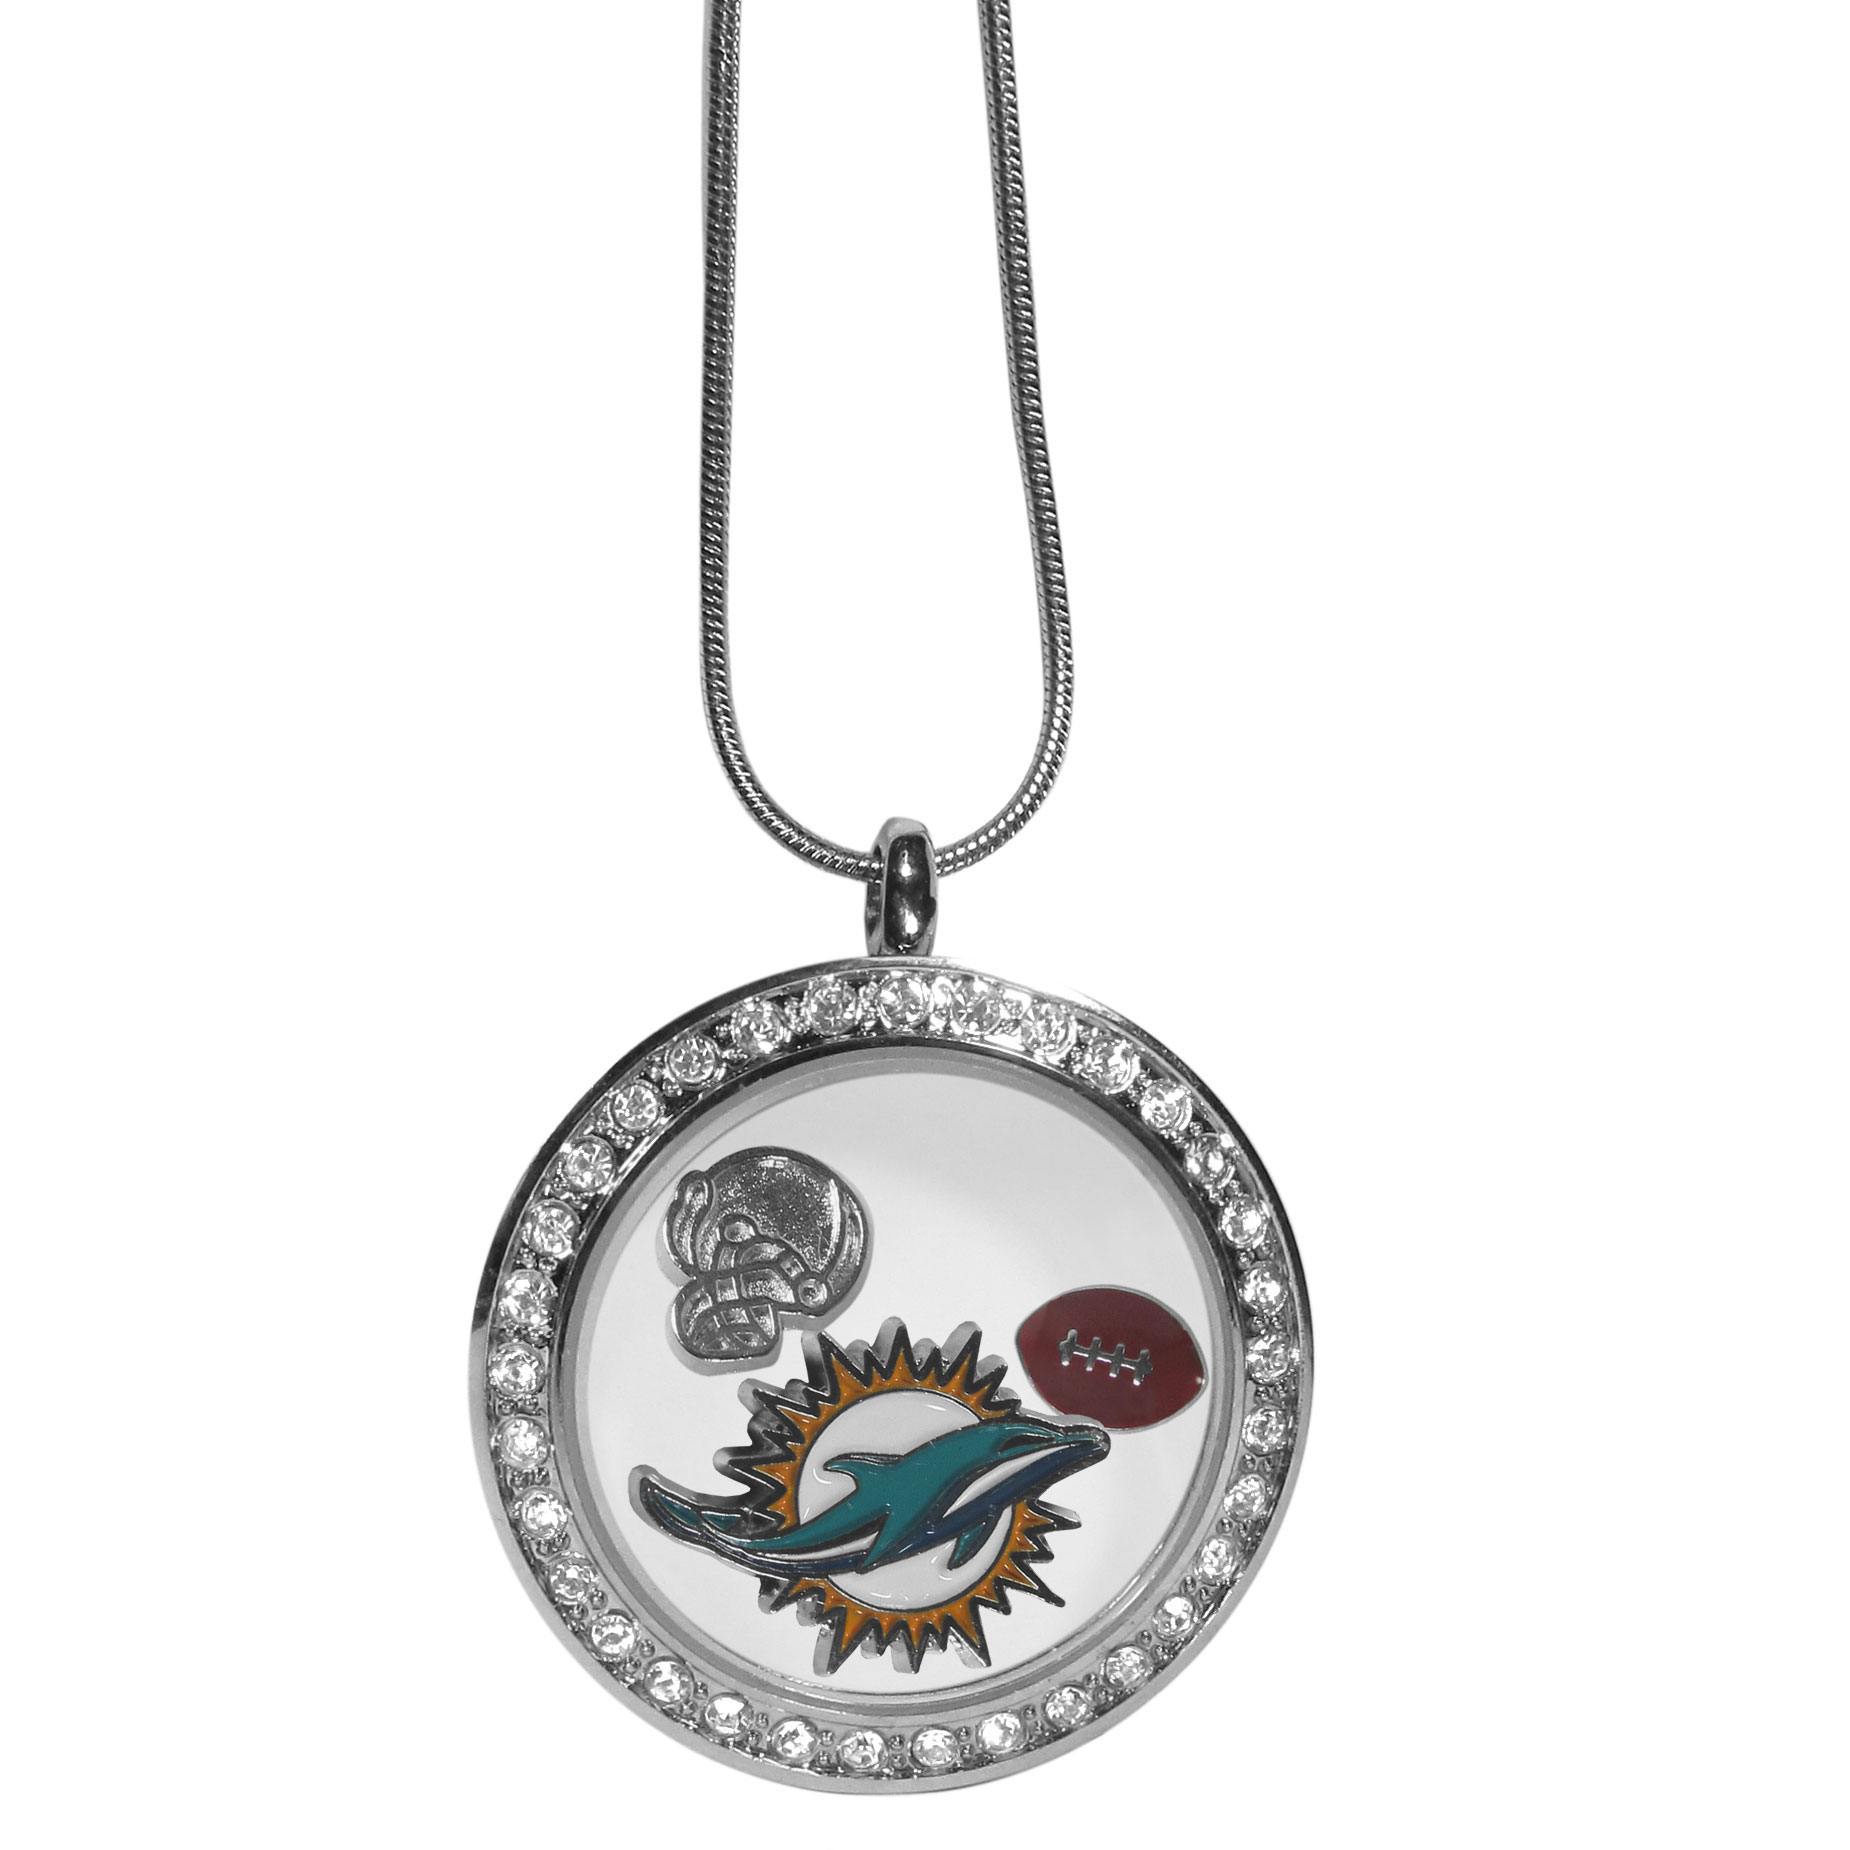 Miami Dolphins Locket Necklace - We have taken the classic floating charm locket and combined with licensed sports charms to create a must have fan necklace. The necklace comes with 3 charms; 1 Miami Dolphins charm, one football charm and one helmet charm. The charms float in a beautiful locket that has a strong magnetic closure with a rhinestone border. The locket comes on an 18 inch snake chain with 2 inch extender.